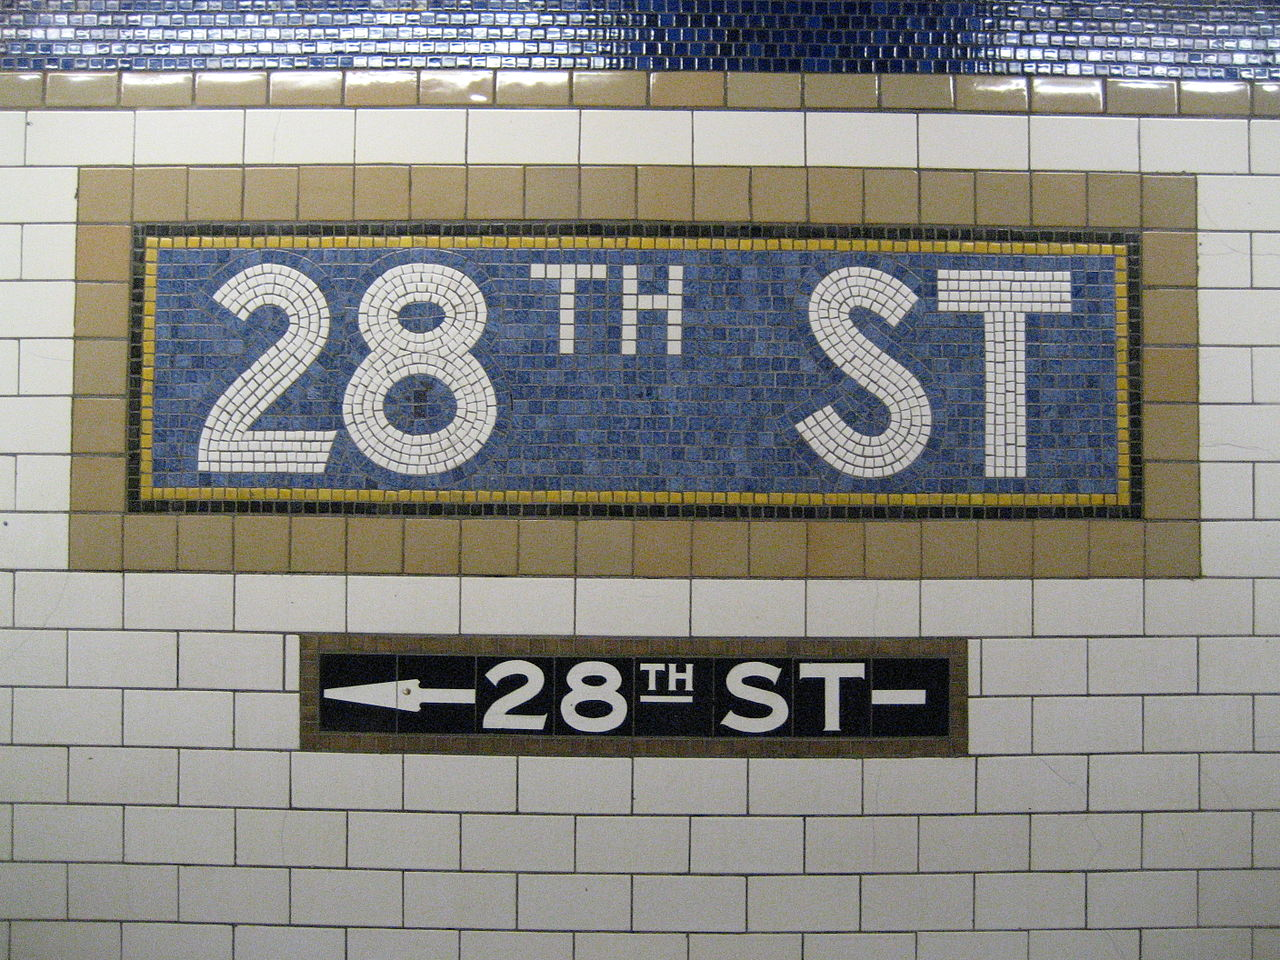 File28th Street Mosaic Sign, Irt Lexington Avenue Line. Data Cabling Companies How To Research Stocks. Investing In Penny Stock H06 Condo Insurance. Industrial Engineer Careers Online Web Site. Supply Chain Logistics Degree. Materials Characterization Services. Good Business Schools In California. Mortgage Broker Description Dish San Diego. Ivf After Embryo Transfer Little Yacht Sales